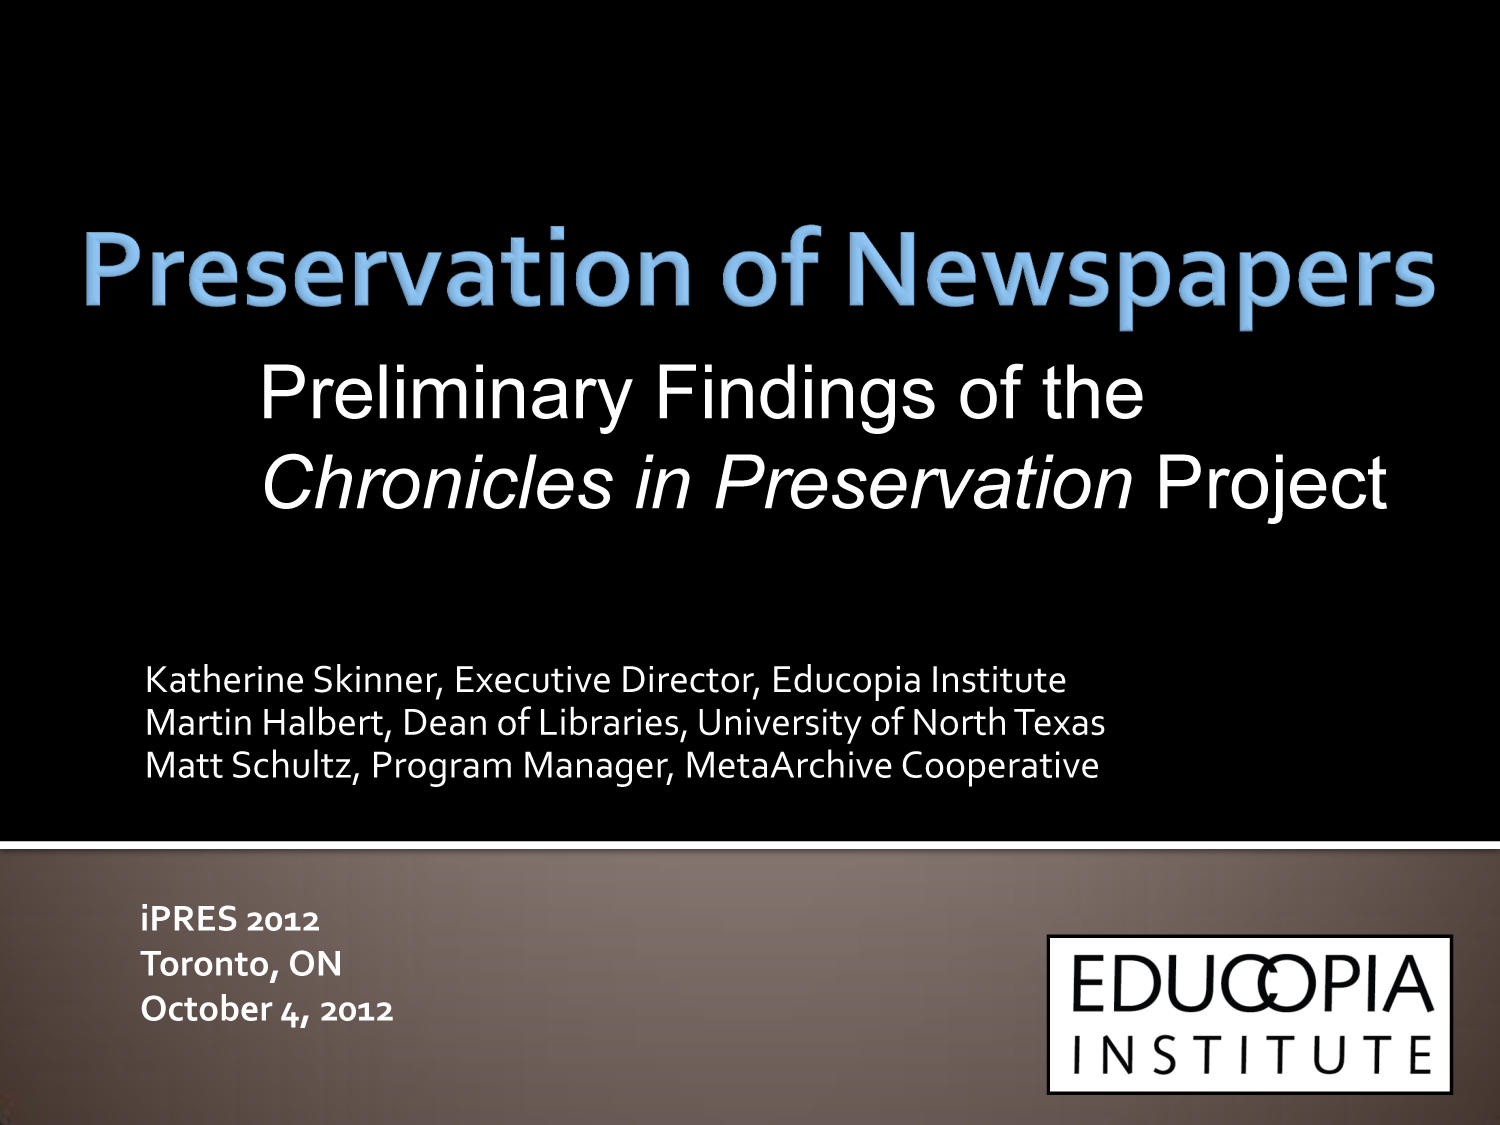 Preservation of Newspapers: Preliminary Findings of the Chronicles in Preservation Project                                                                                                      1